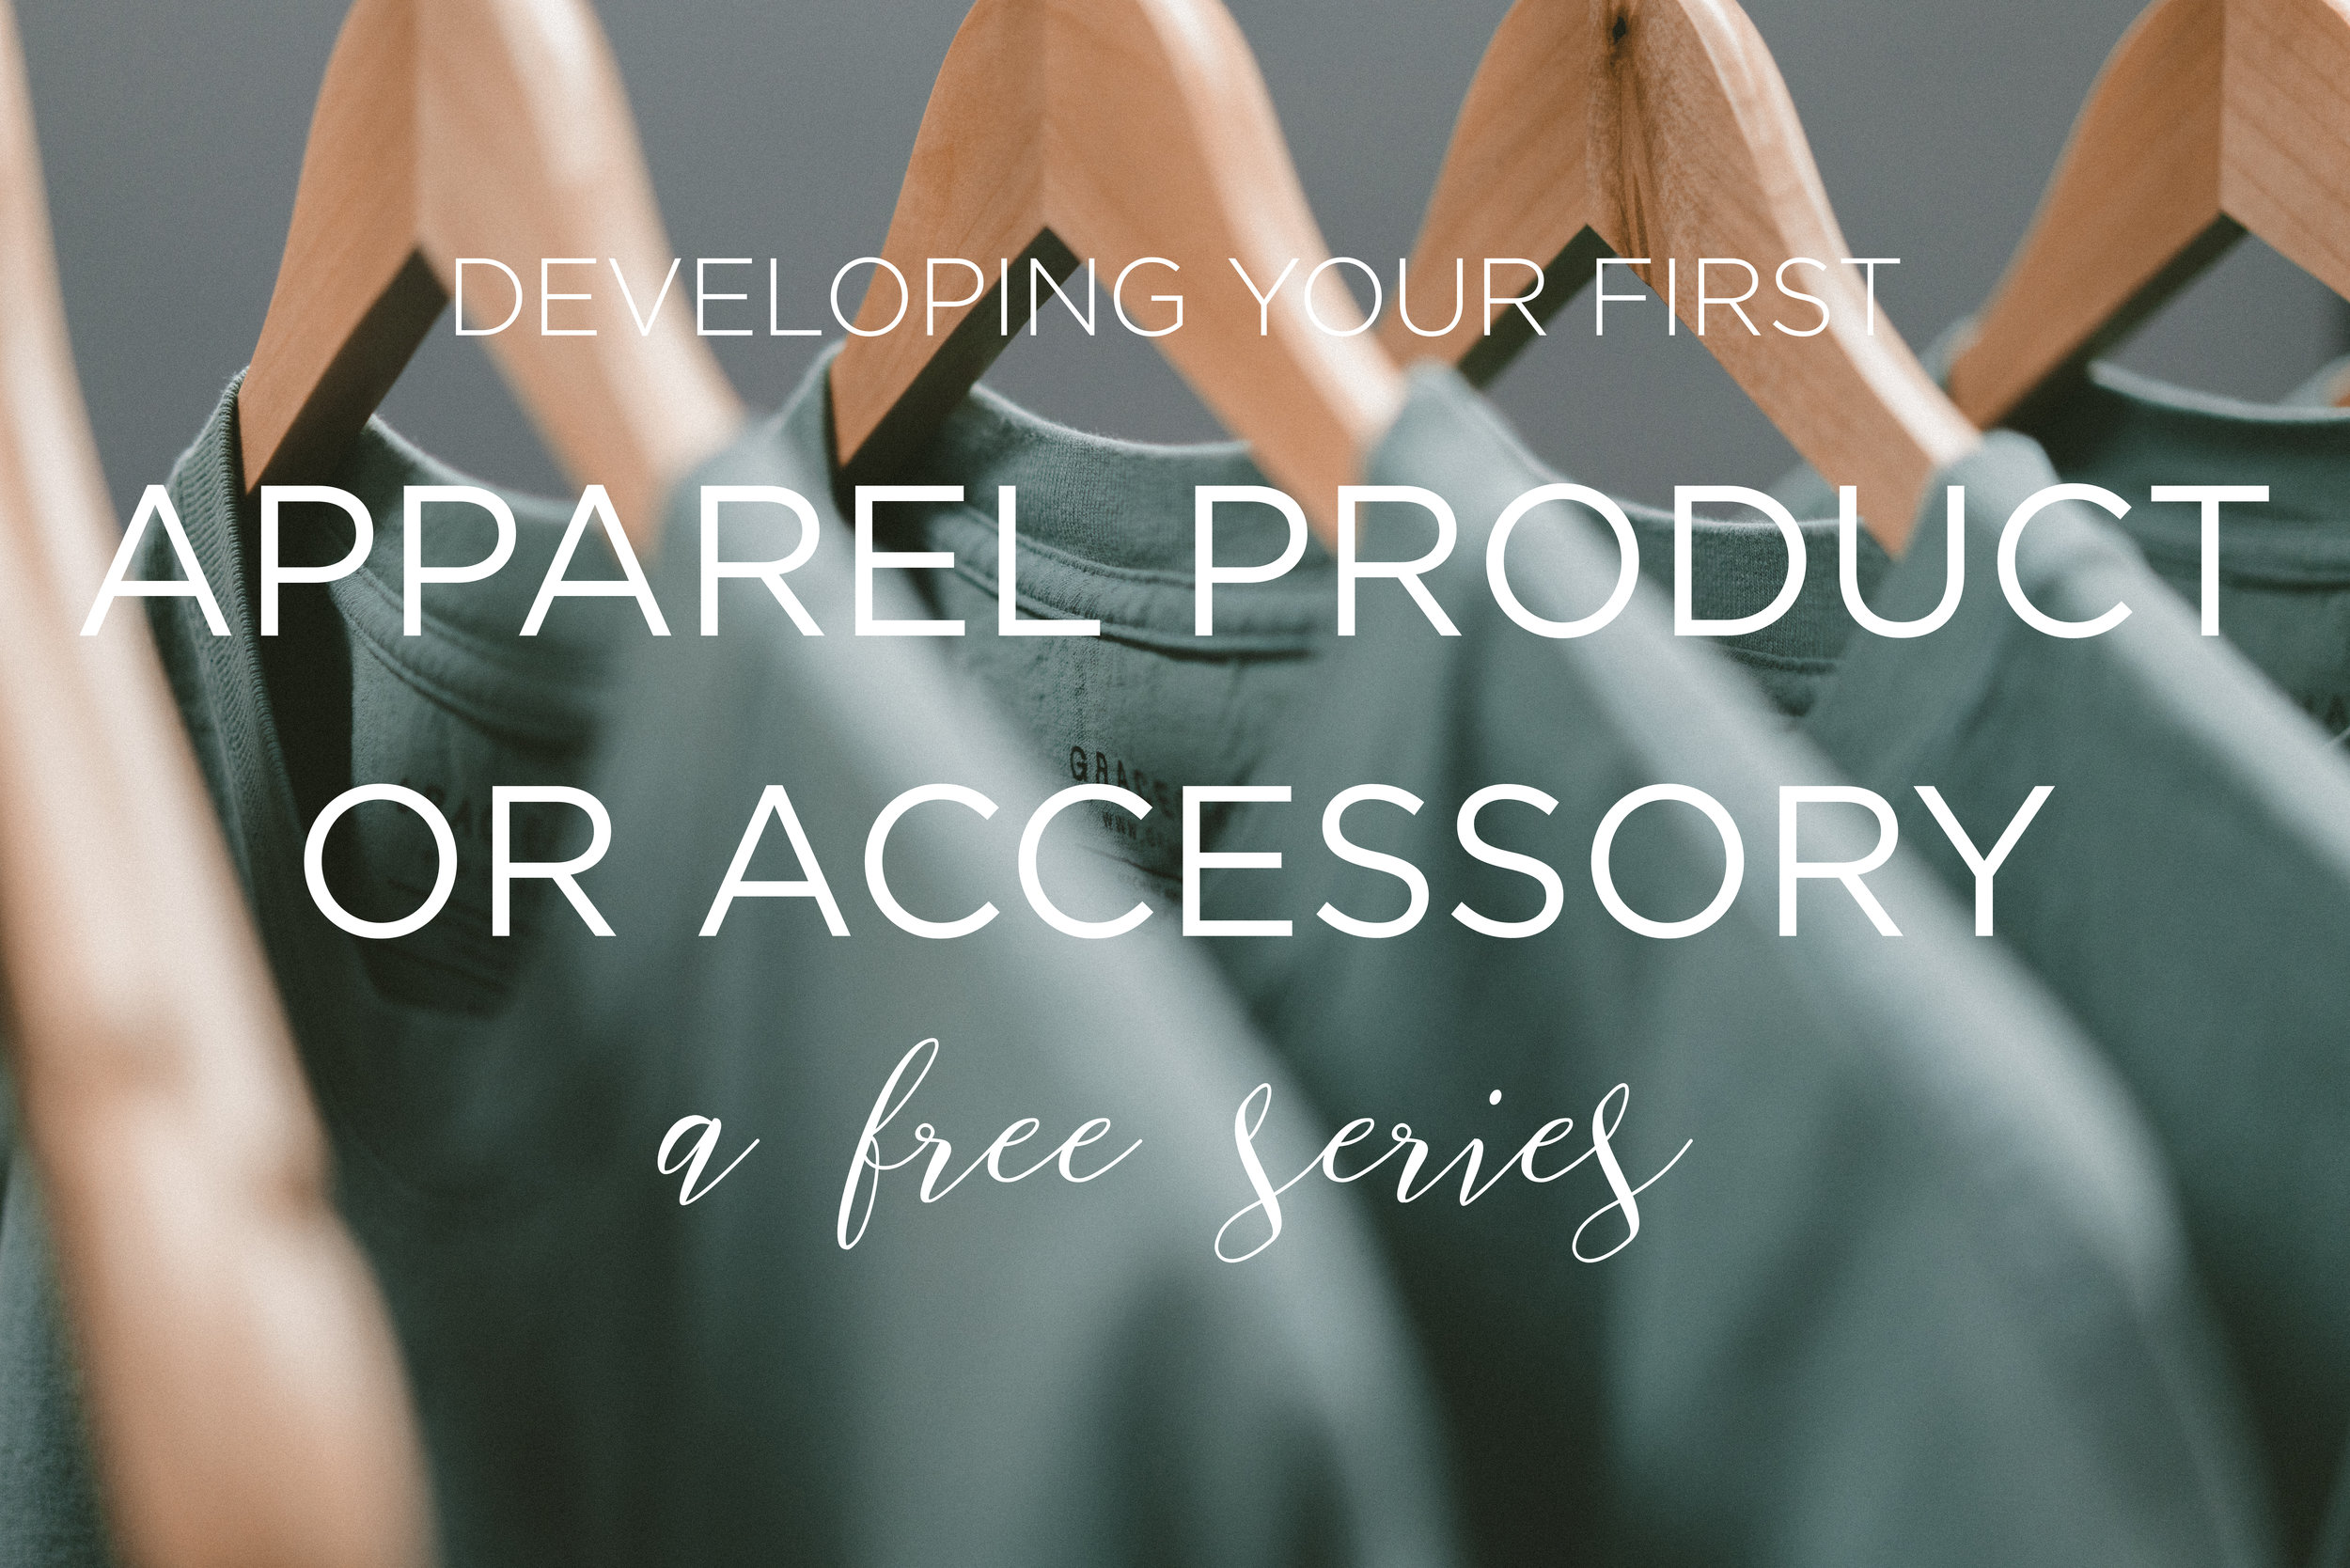 developing-your-first-apparel-product-or-accessory-free-series-points-of-measure.jpg